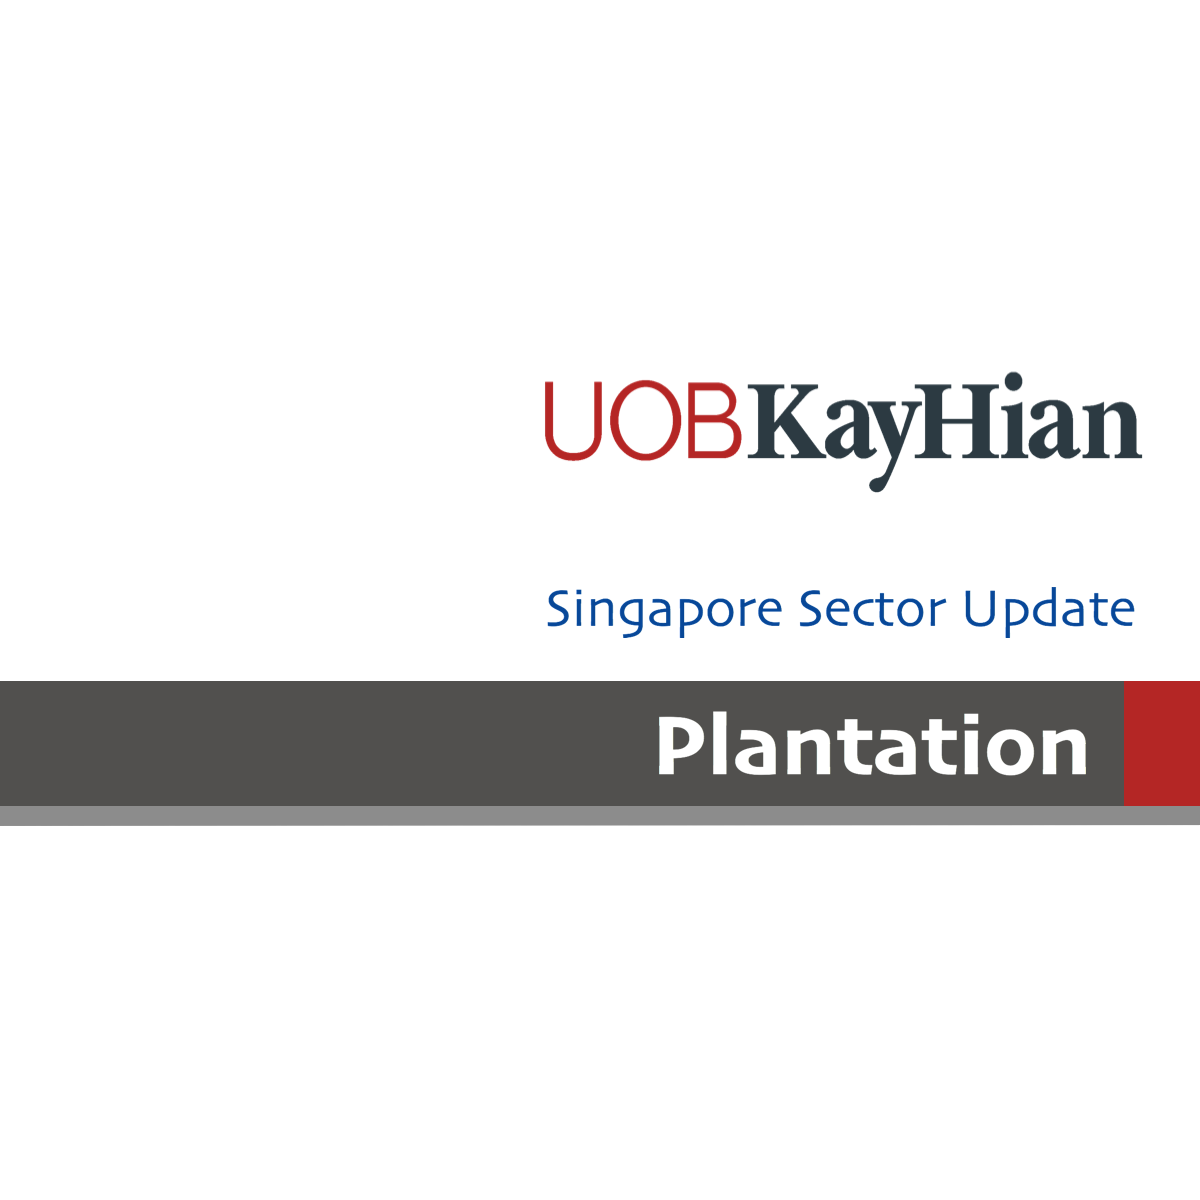 Plantation – Singapore - UOB Kay Hian 2018-03-07: Expect Higher FFB Production In 2018